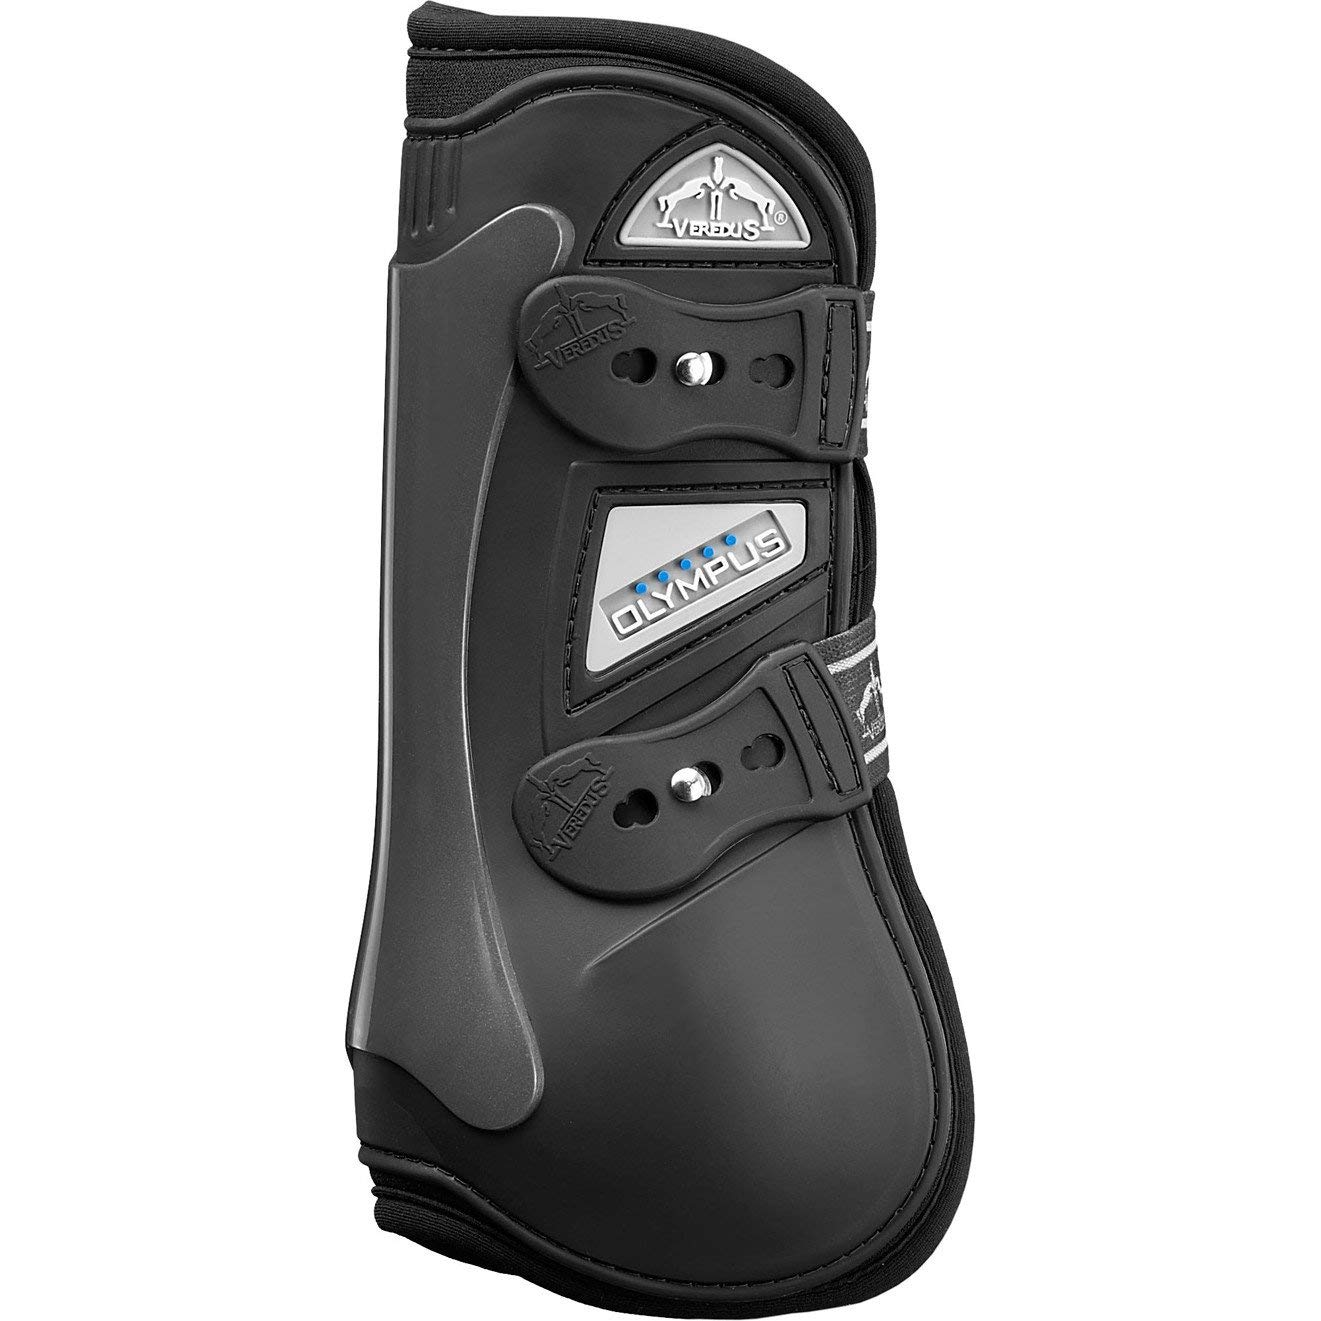 Veredus Olympic Olympus Front Tendon Boot For Horses Black Or Brown Black Large (Horse)